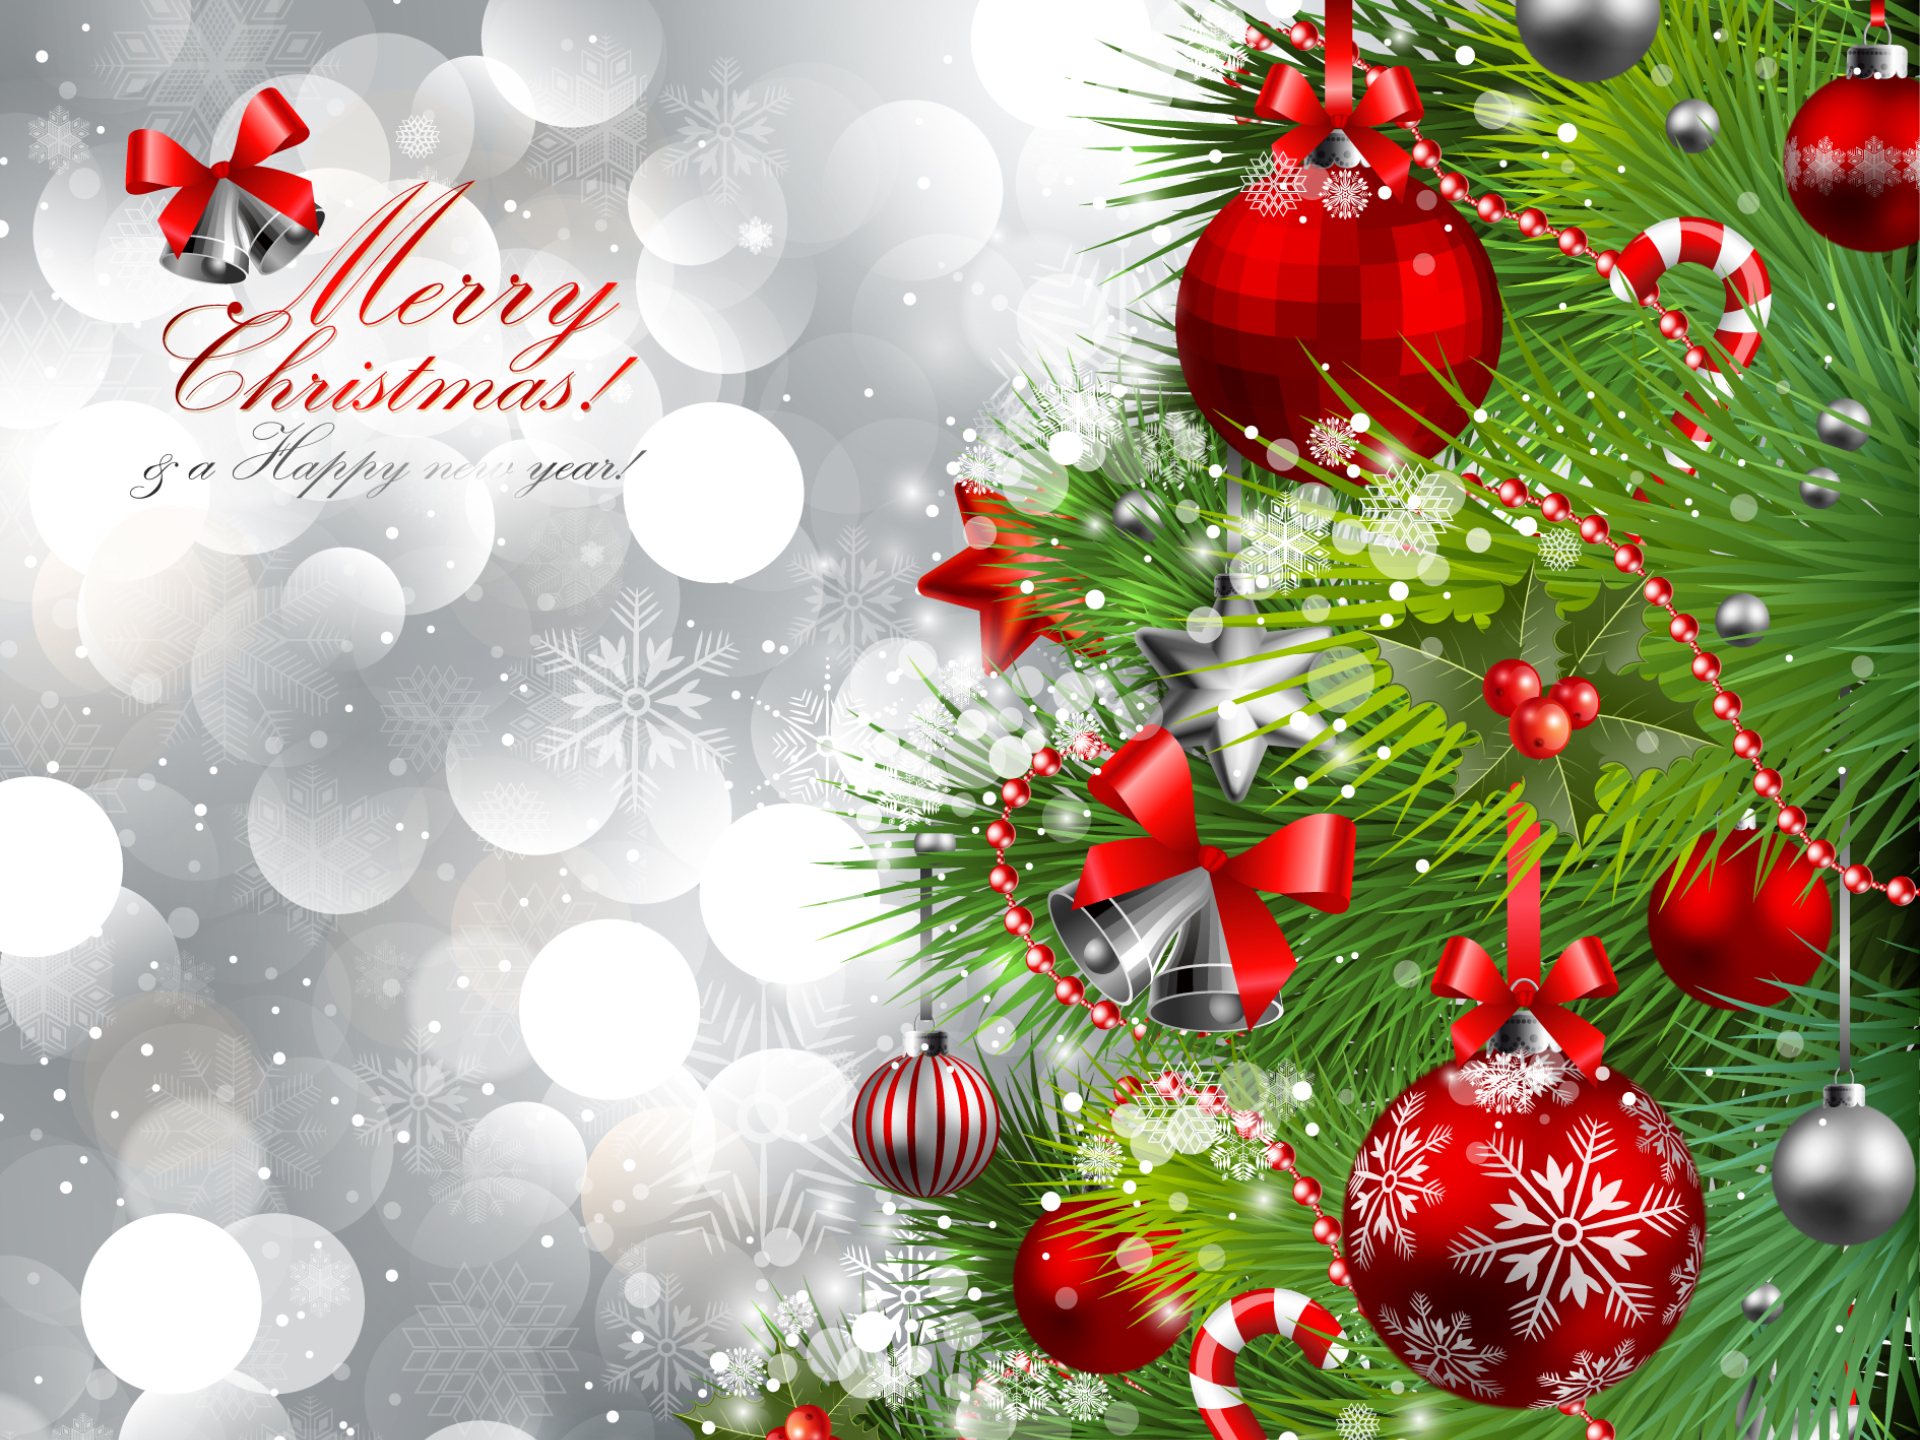 christmas wallpaper download merry - photo #34